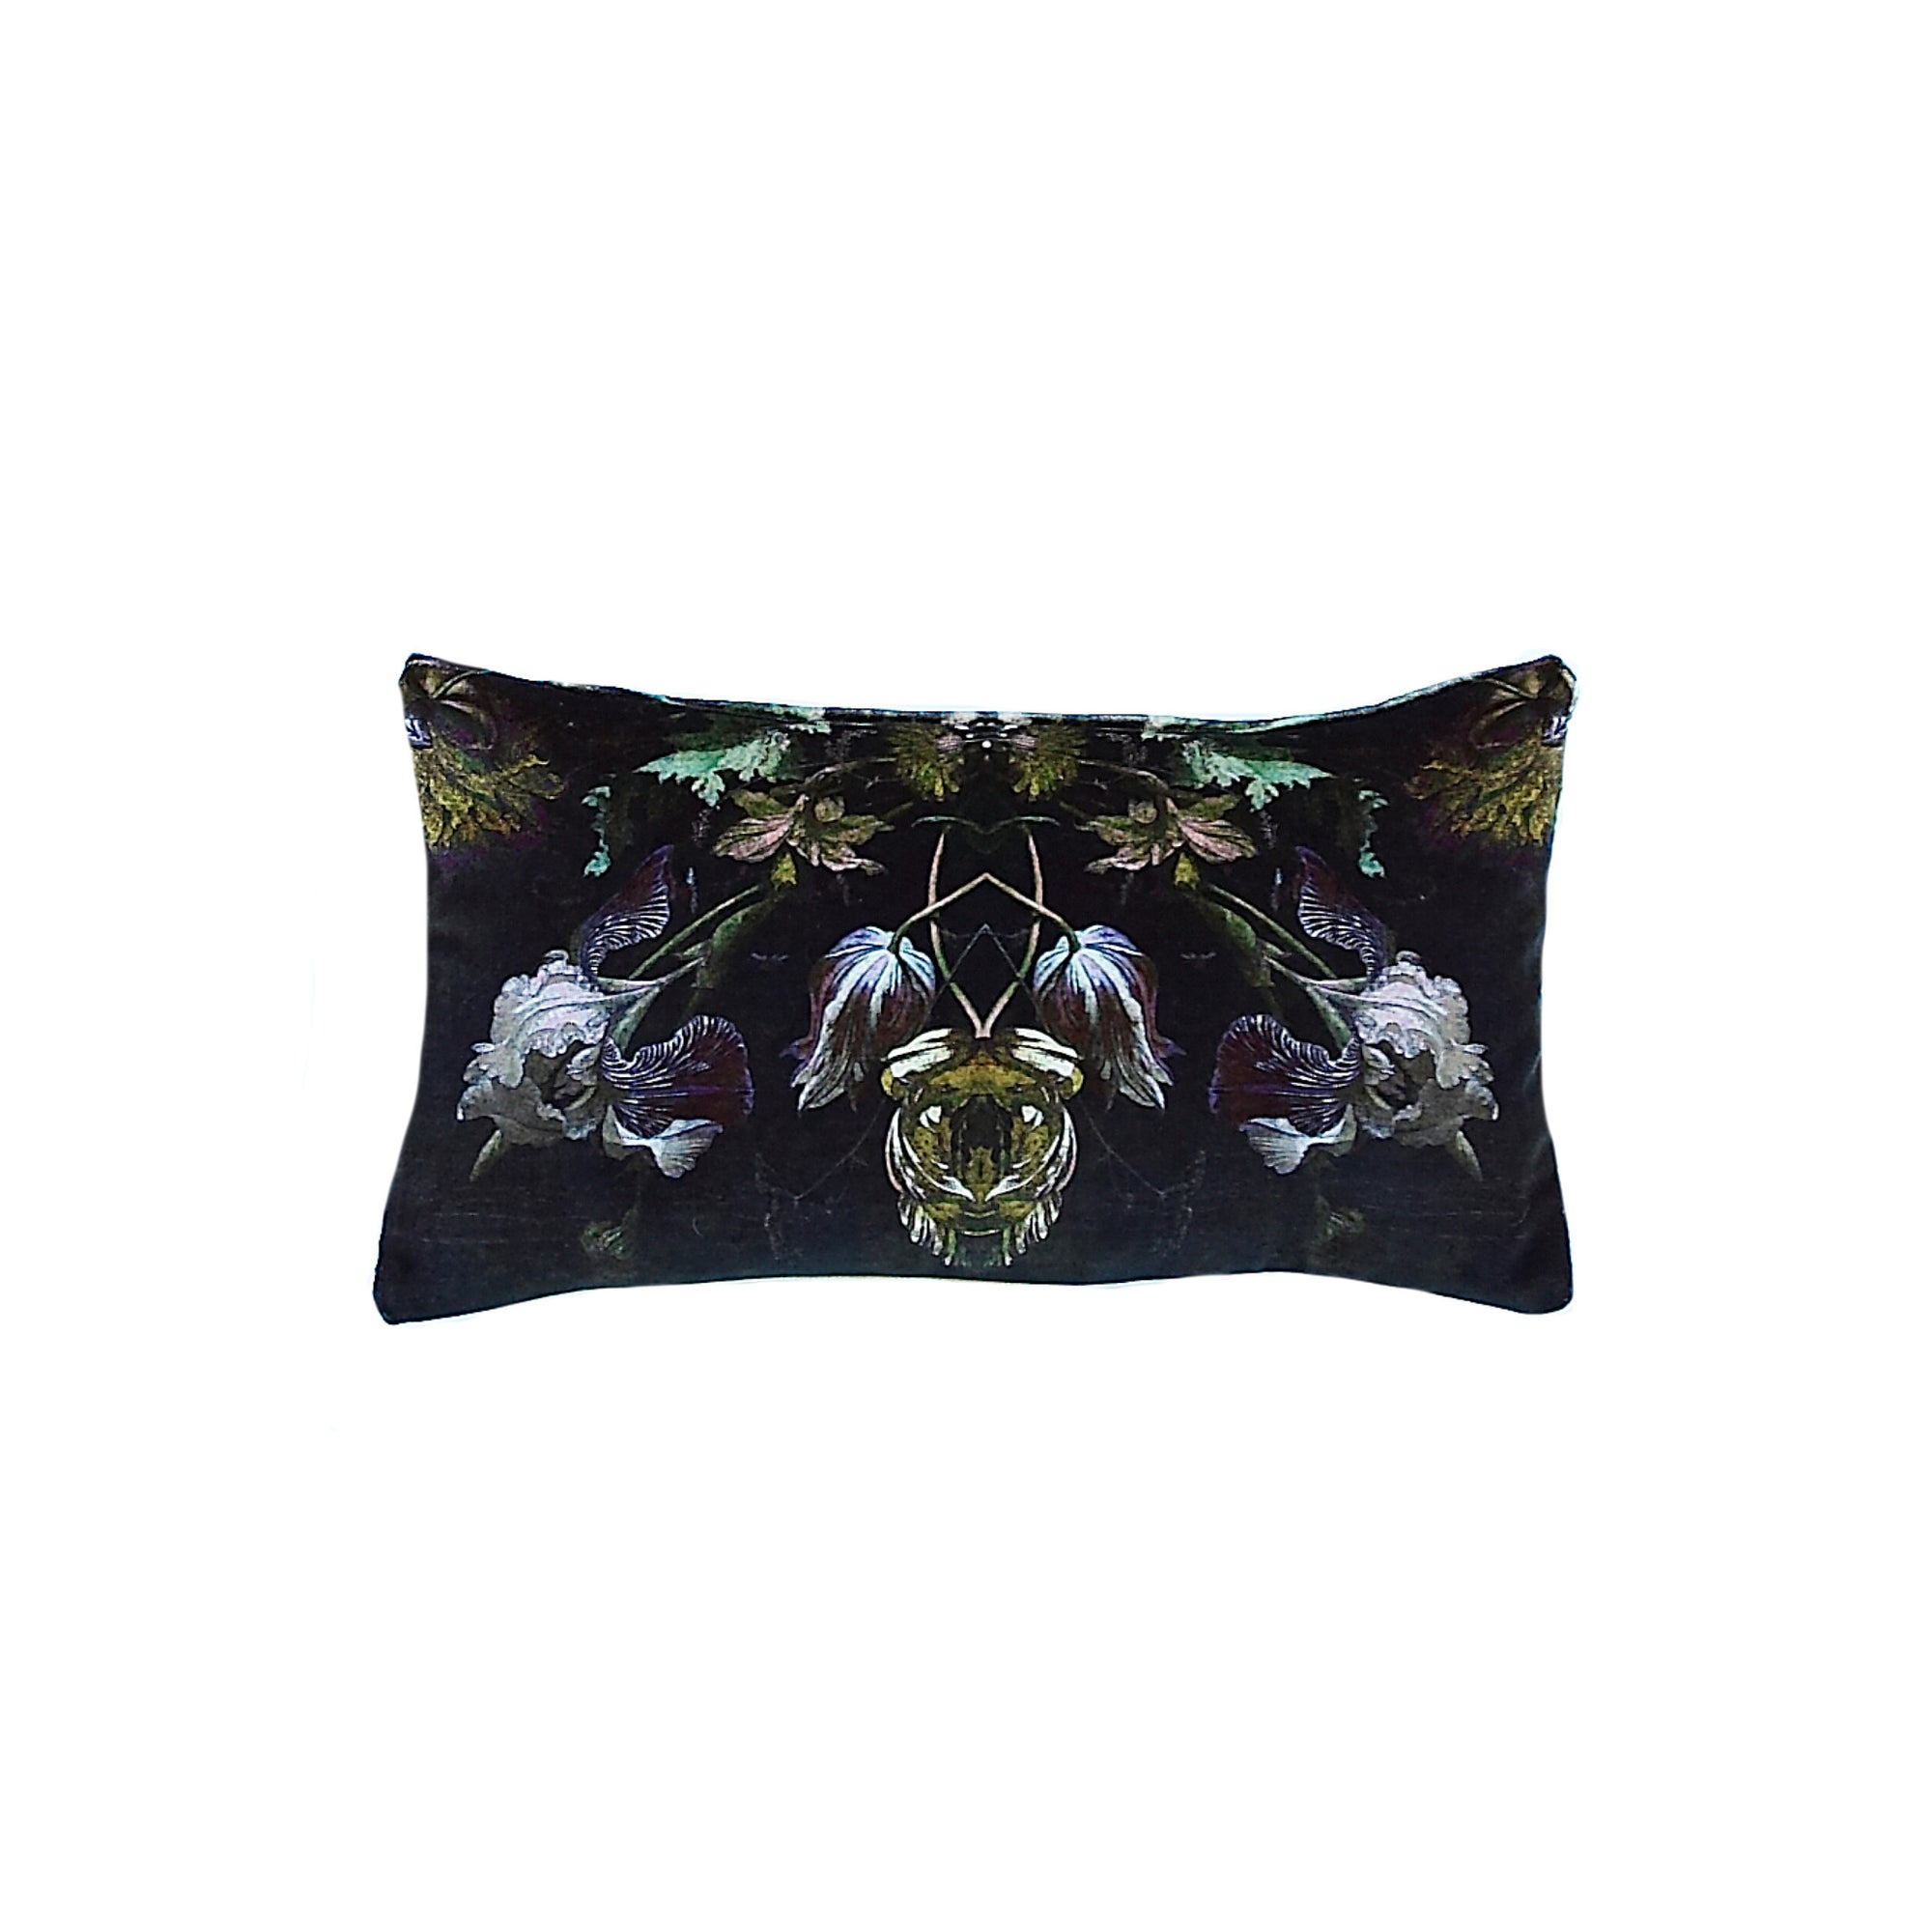 Floralisim Graphic Floral Velvet Cushion 40cm x 22cm, B&C-Boho & Co, Putti Fine Furnishings